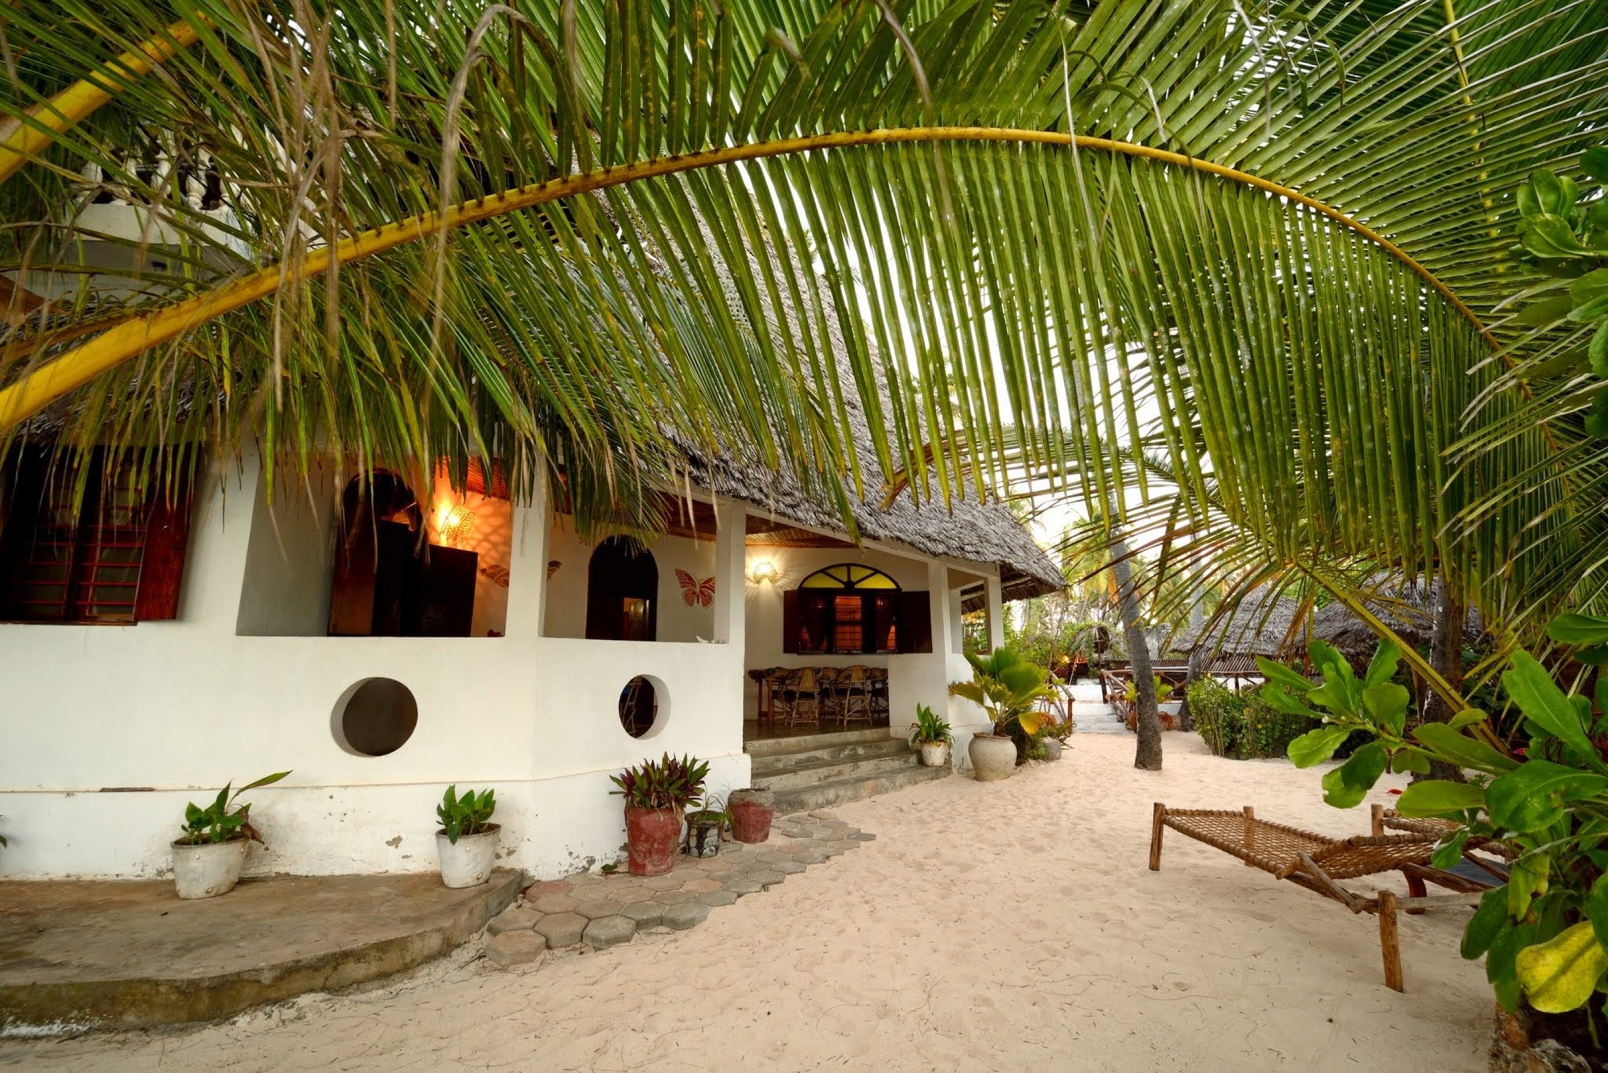 Hostel in Nungwi